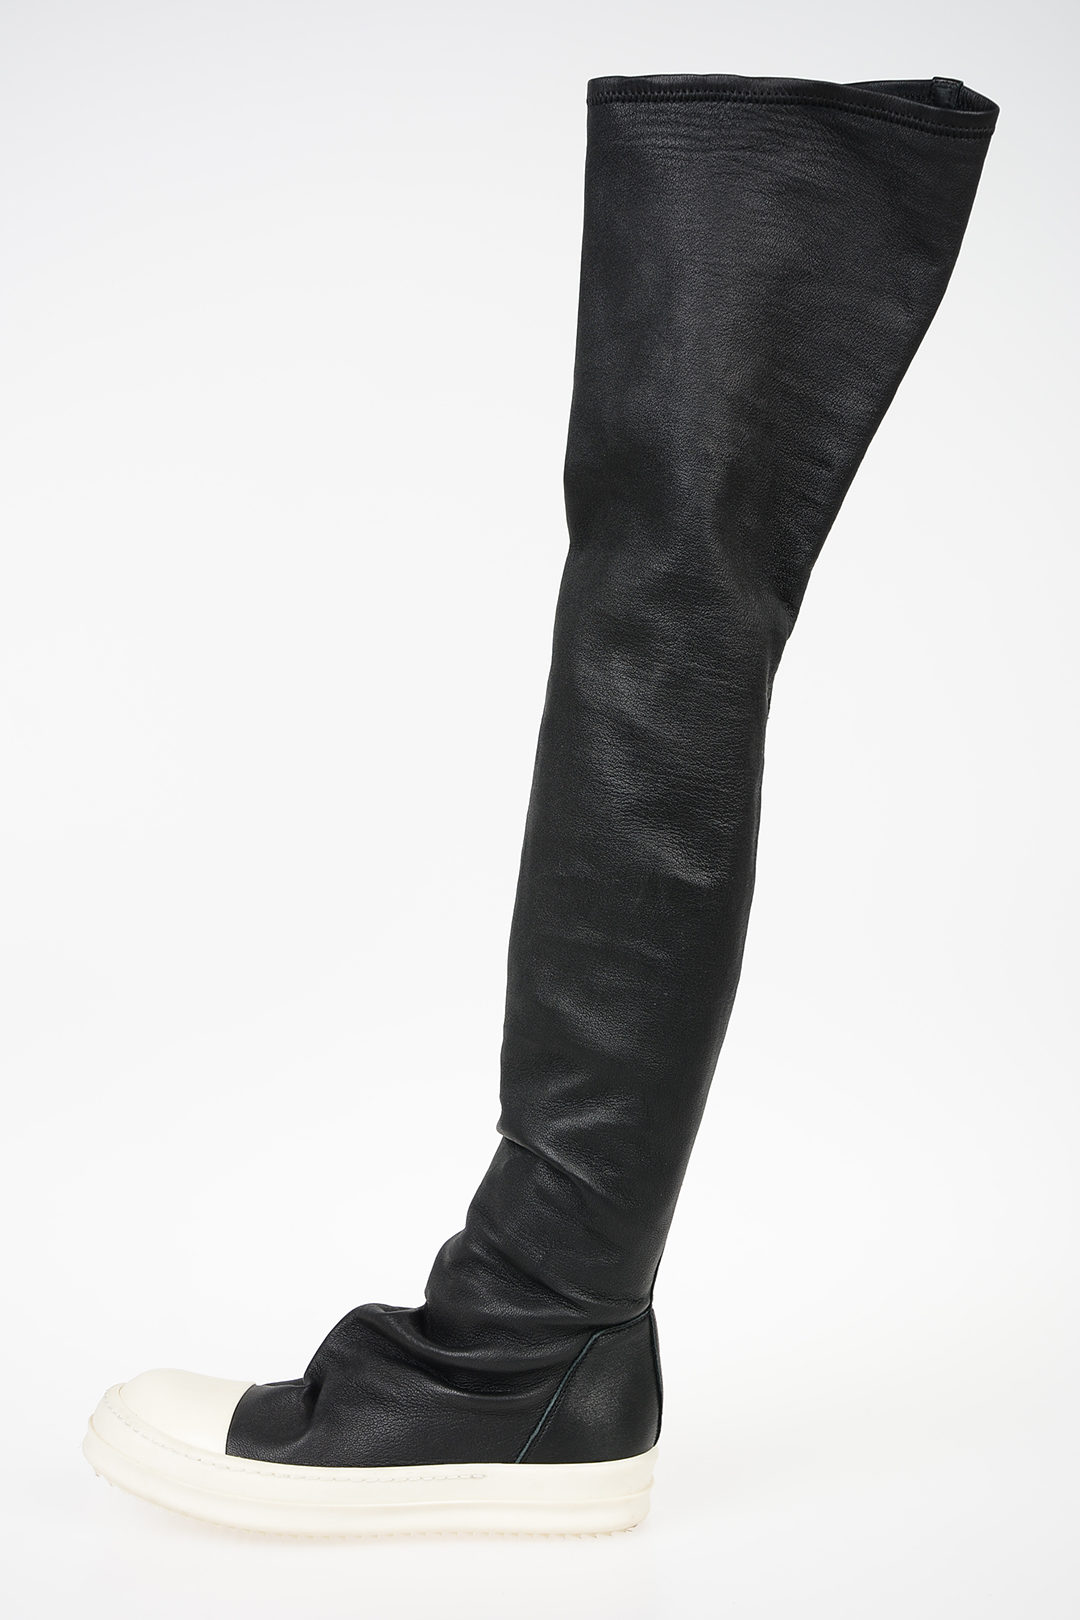 Rick Owens Leather STOCKING Boots women